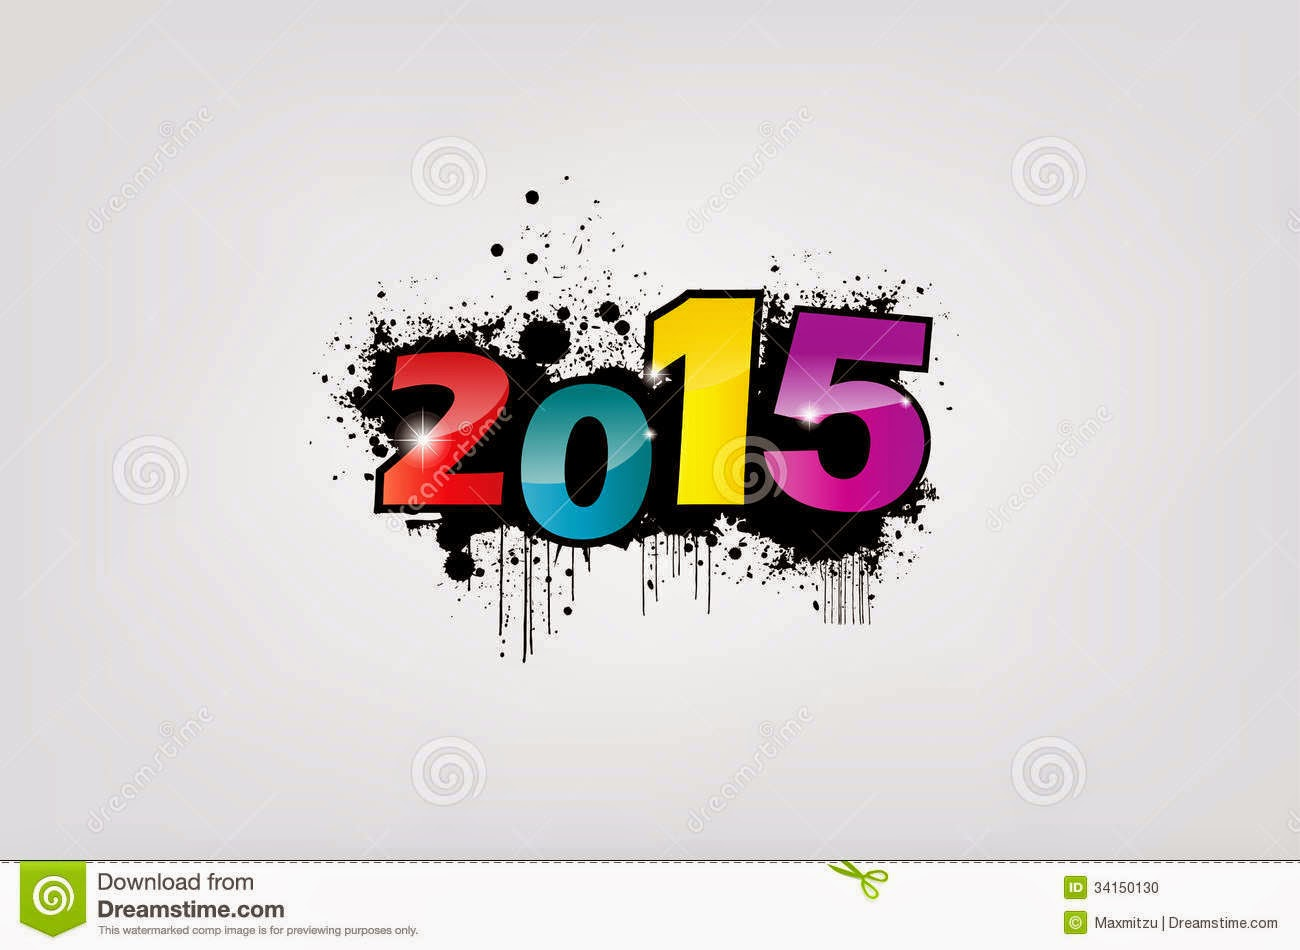 new year 2015 wallpapers 2015 new year wallpapers happy new year 2015 ...